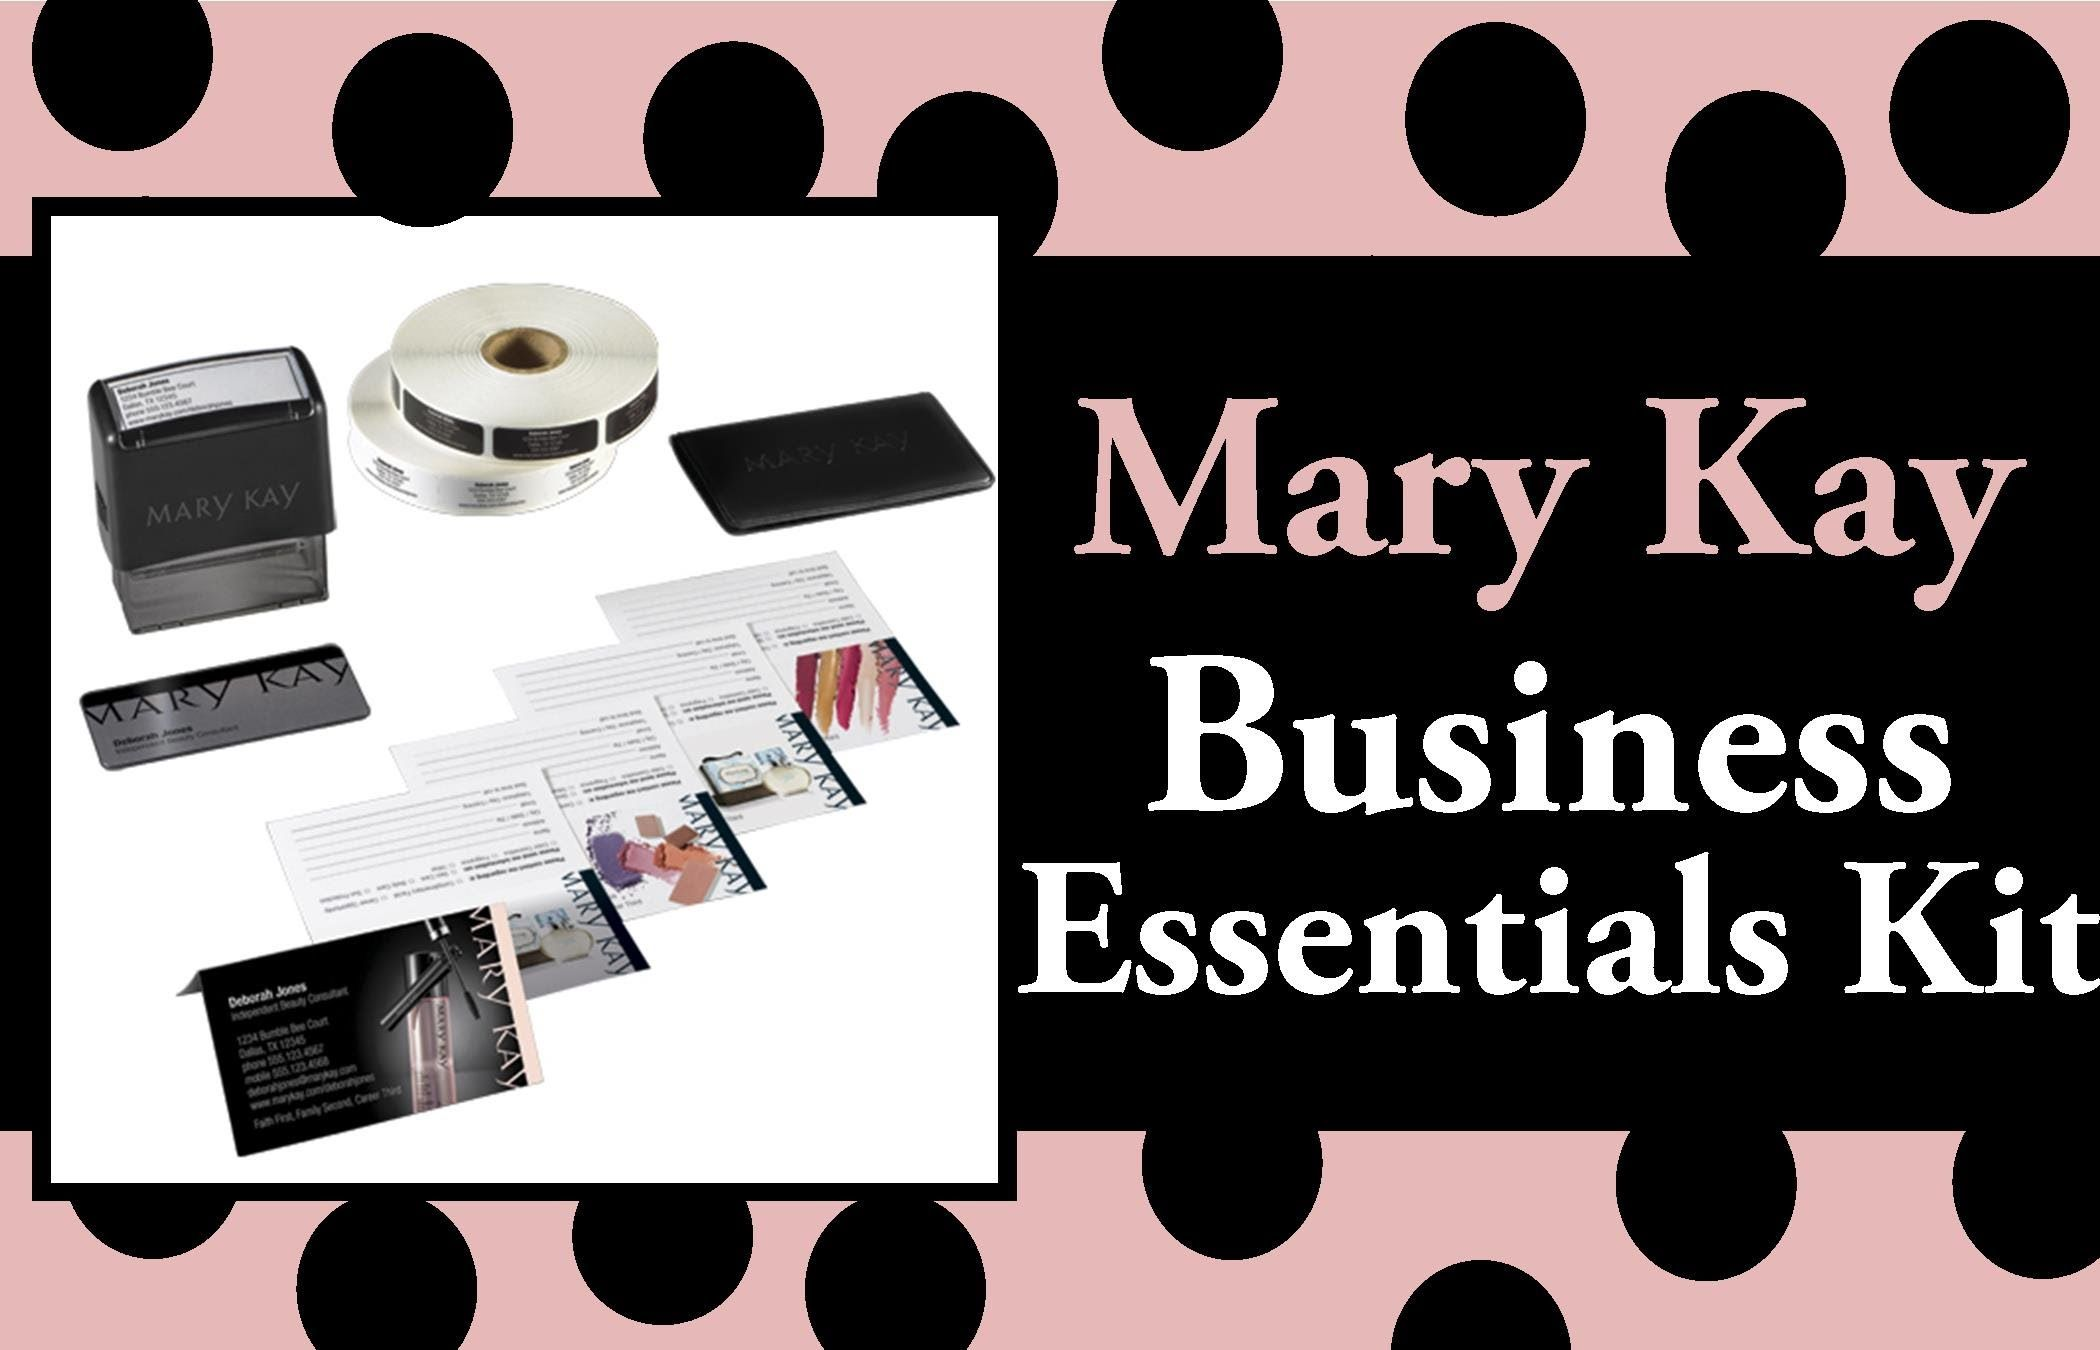 The Mary Kay Business Essentials Kit - Your Promotional Tools #MaryKay #Business #Marketing #Sales #BusinessOpportunity